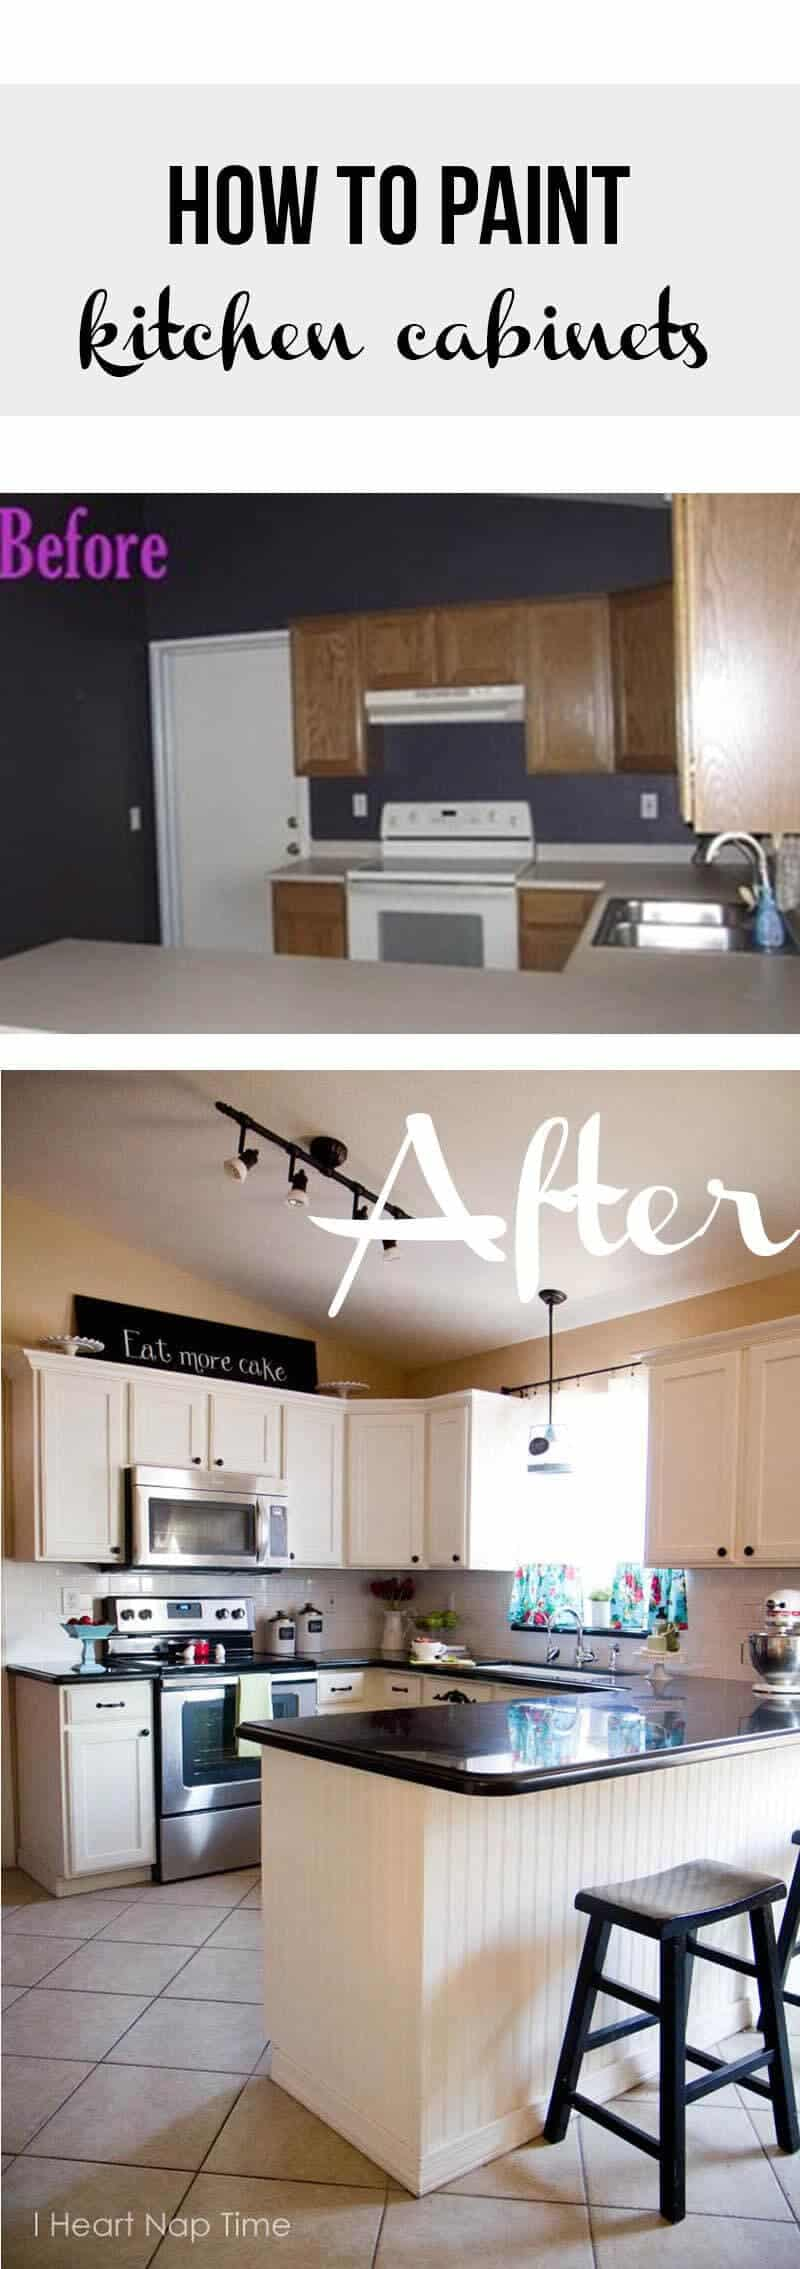 kitchen makeover repaint kitchen cabinets how to paint kitchen cabinets